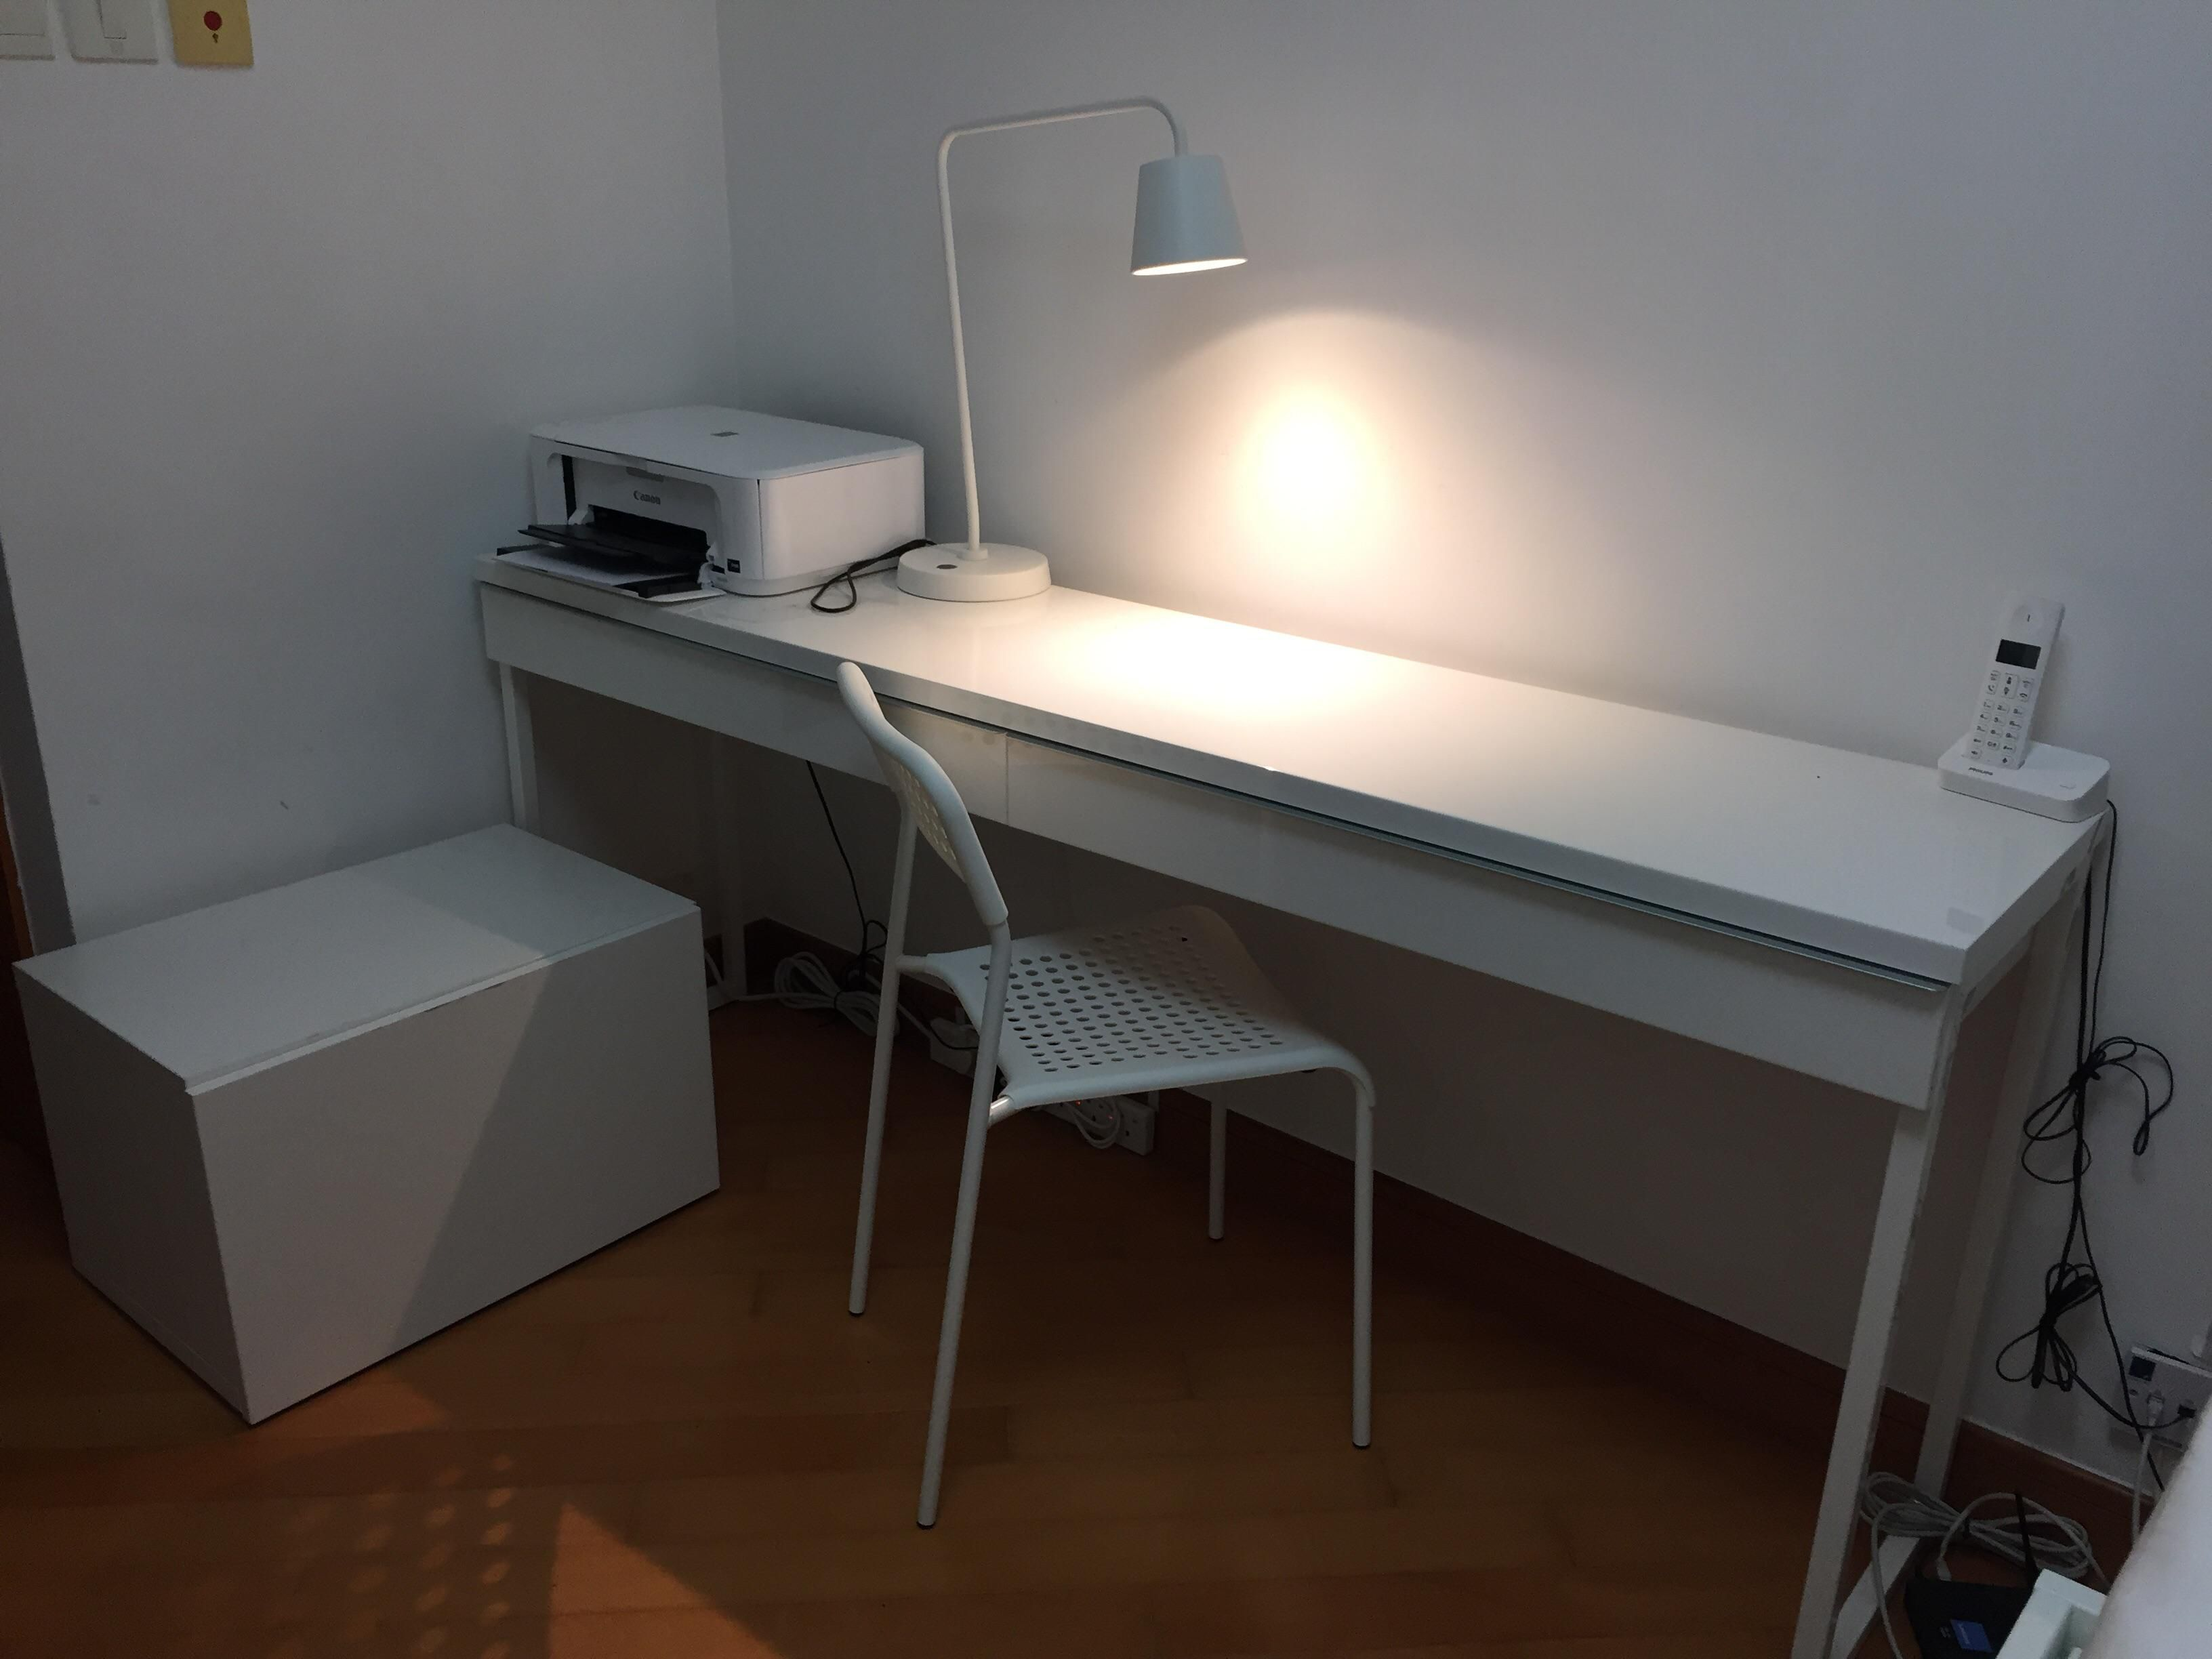 Work desk lamp ikea tisdag led work lamp white secondhand work desk lamp ikea tisdag led work lamp white aloadofball